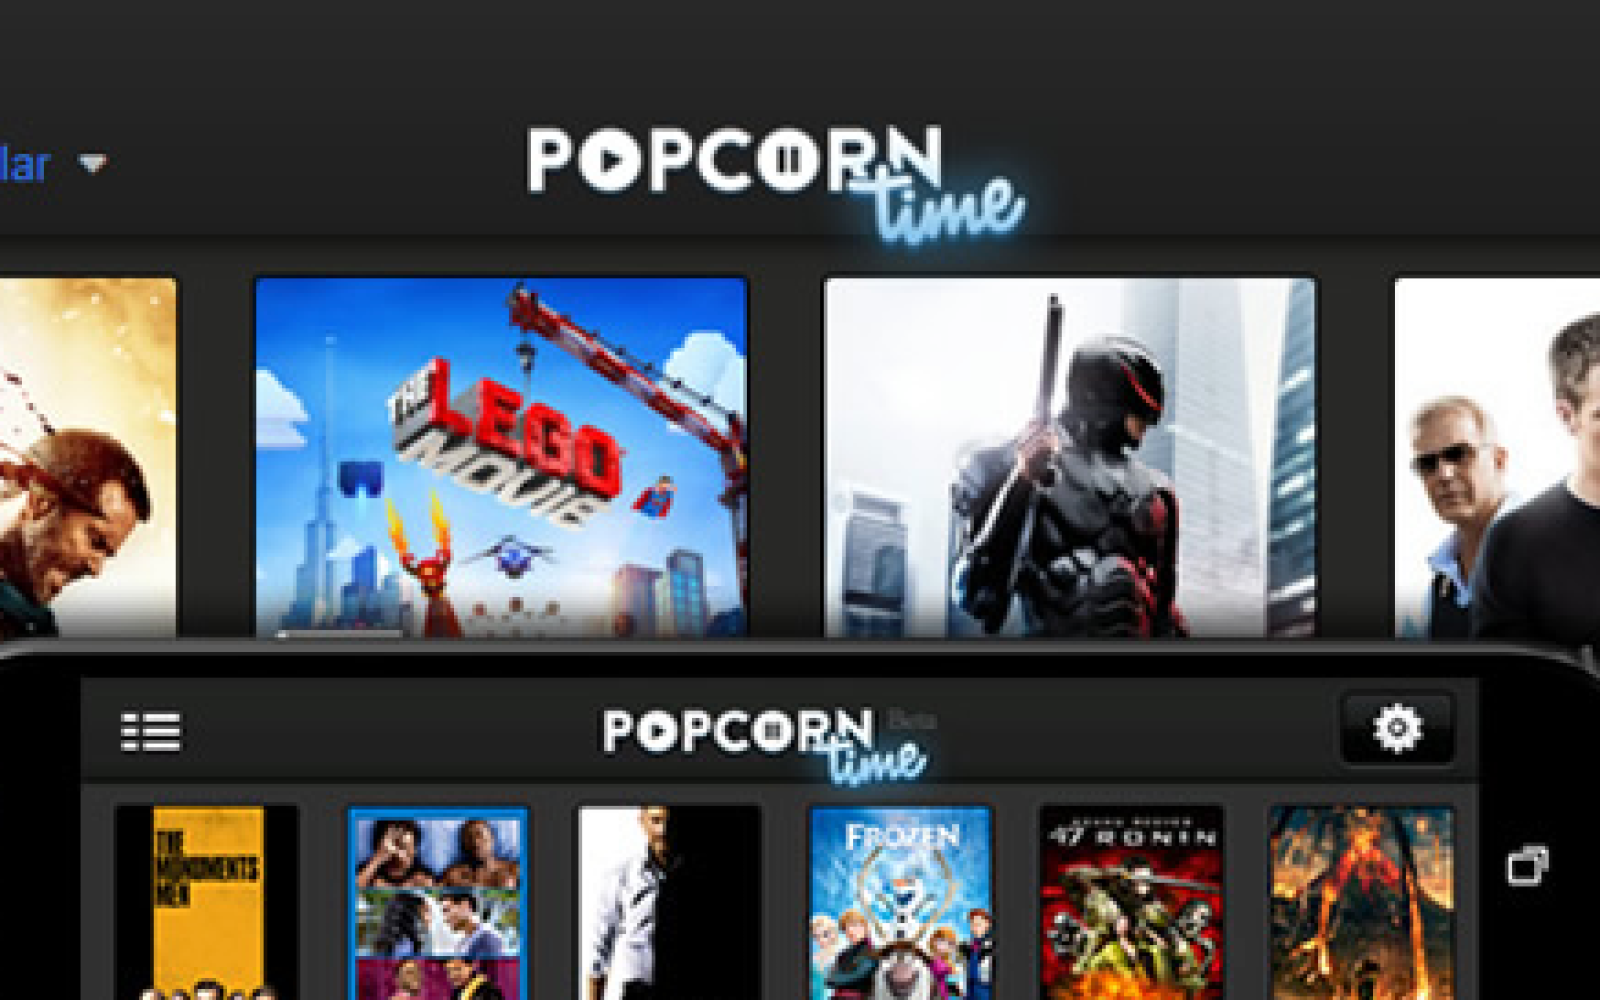 Chromecast Support Coming Soon To Controversial Movie Streaming App